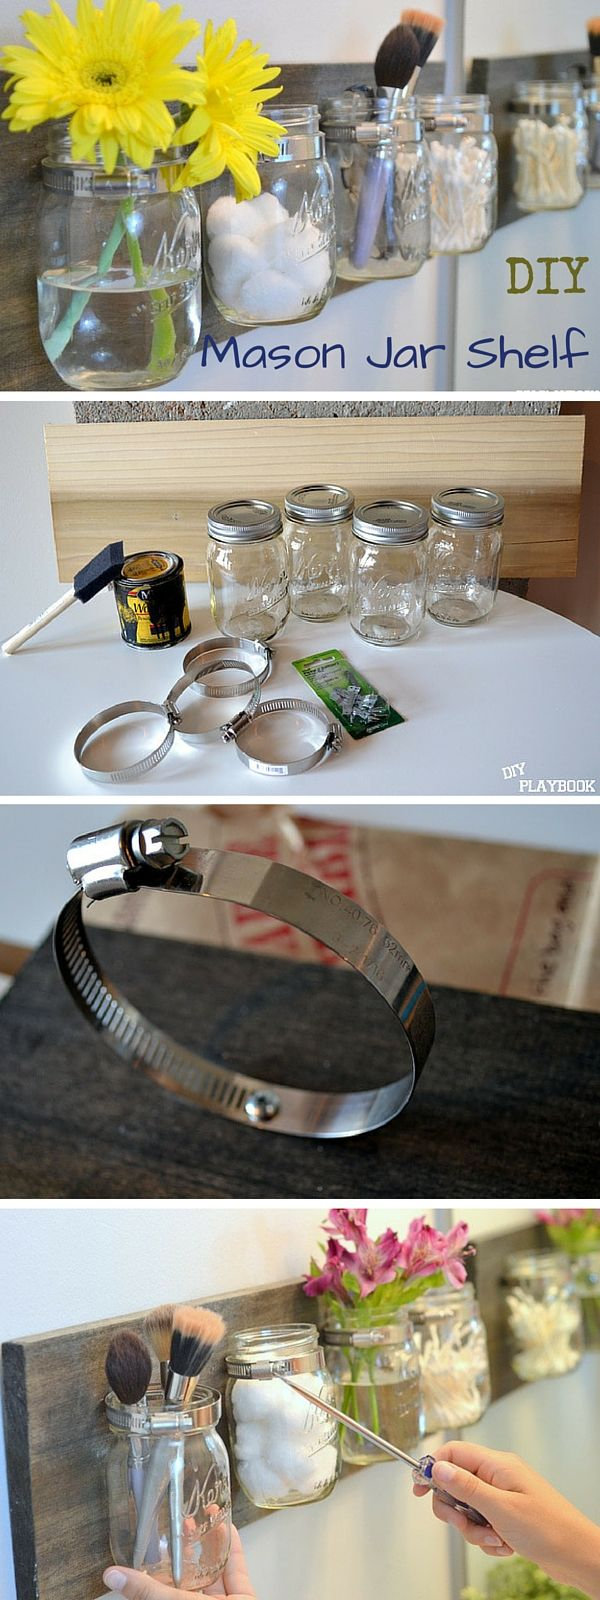 25 best ideas about Mason jars on